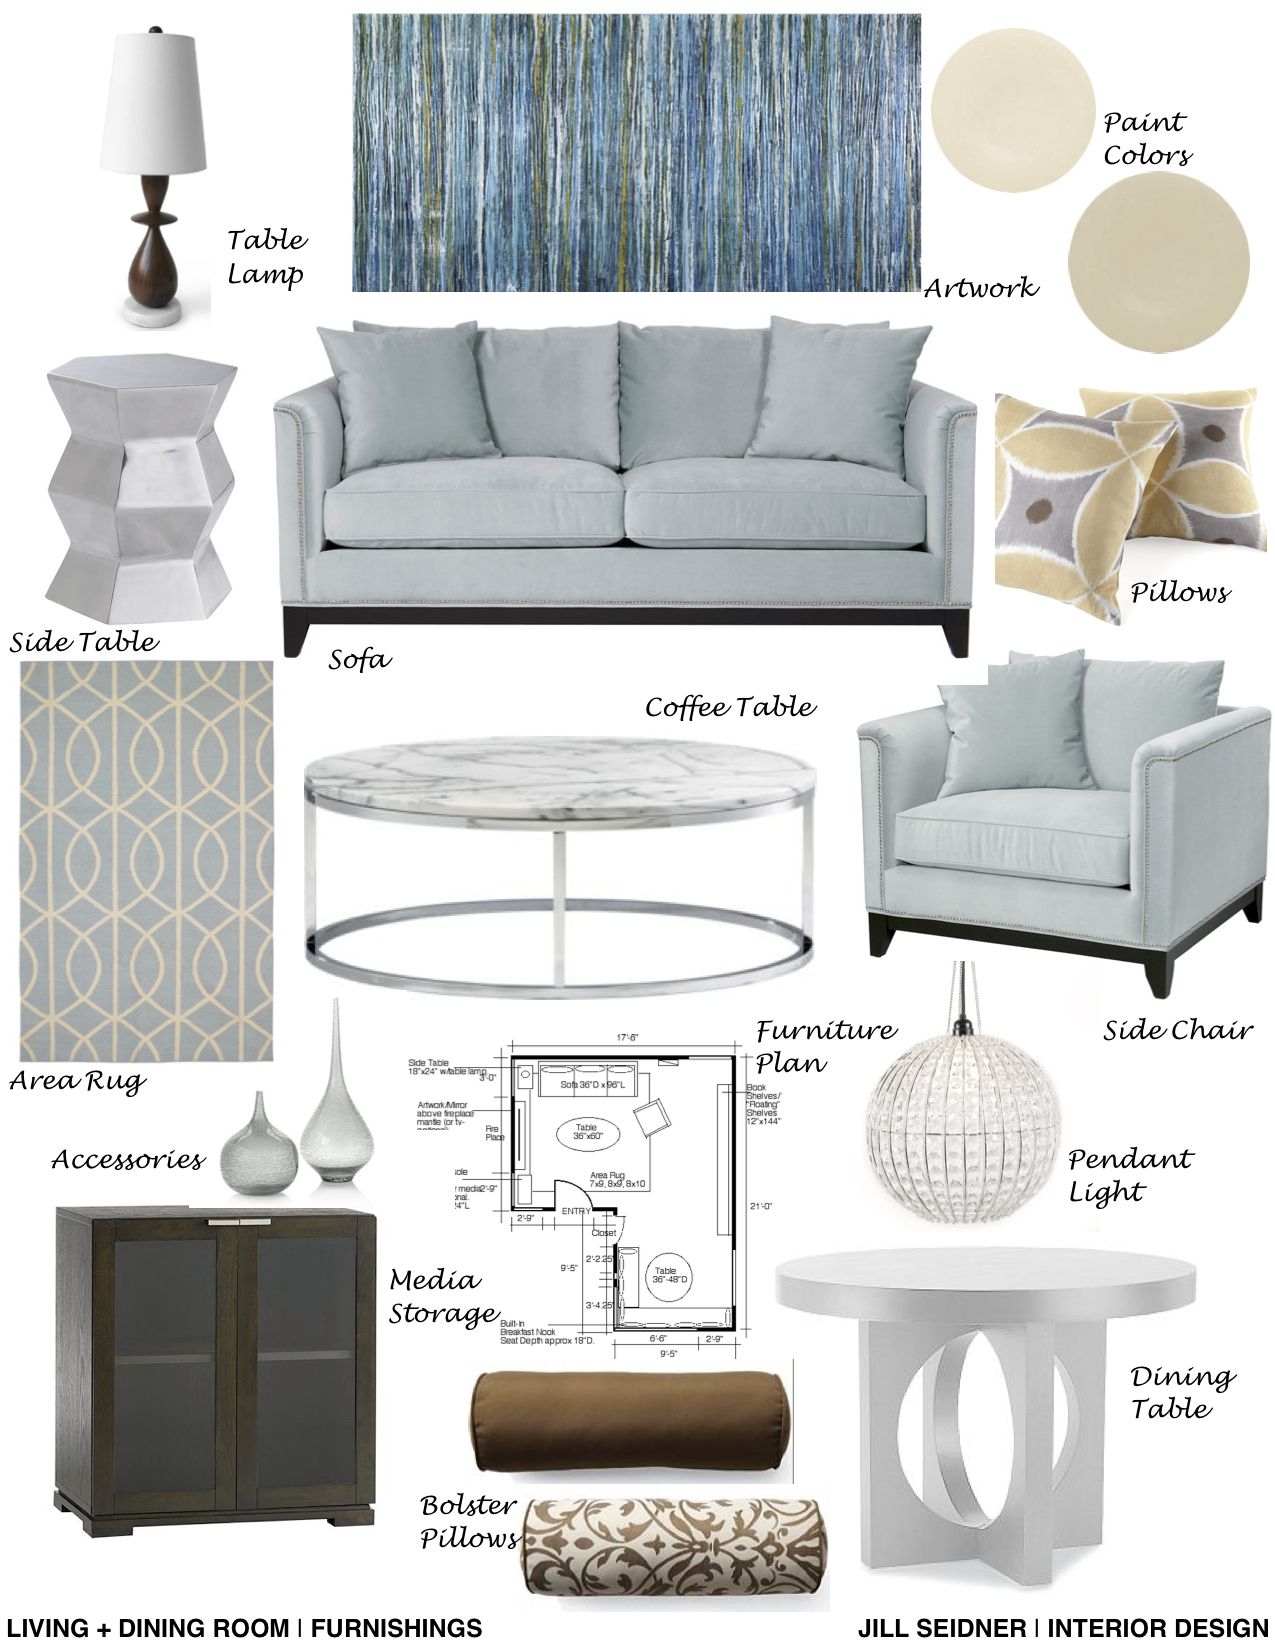 Living Room Furnishings Concept Board With Images Interior